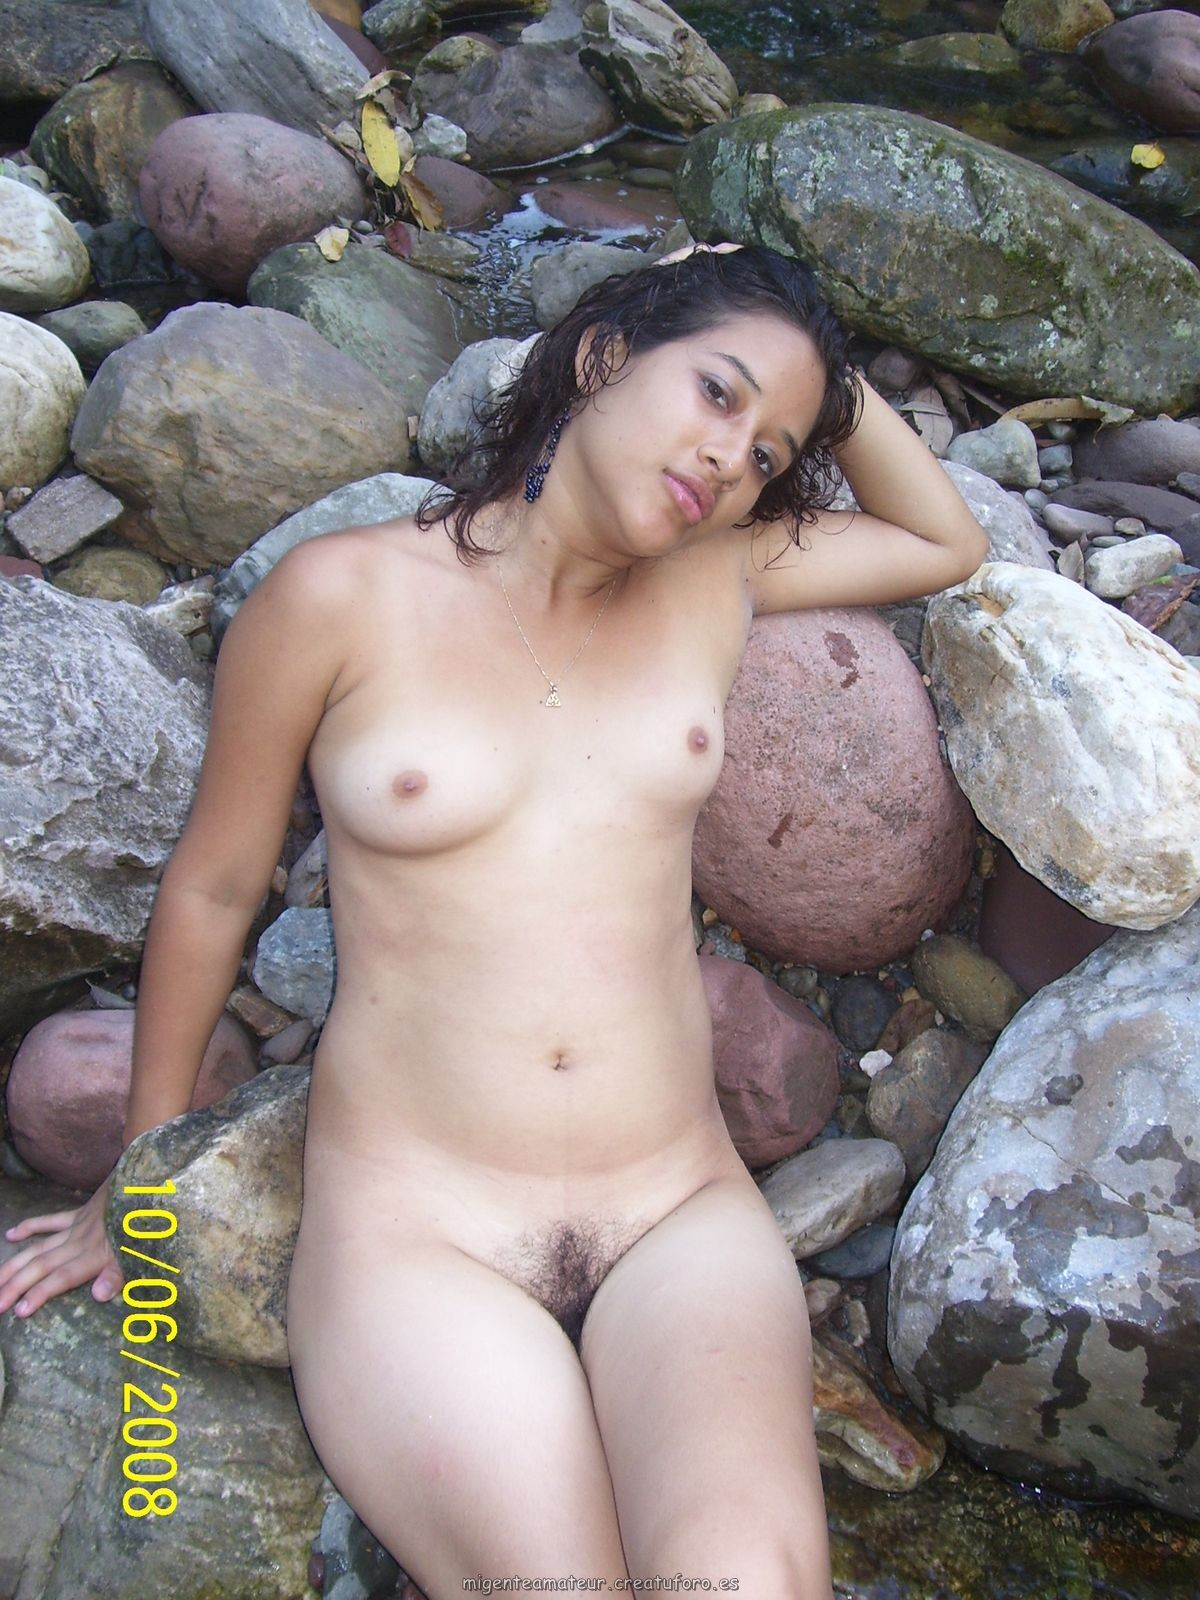 Peru S Nude Hot Teen Girls